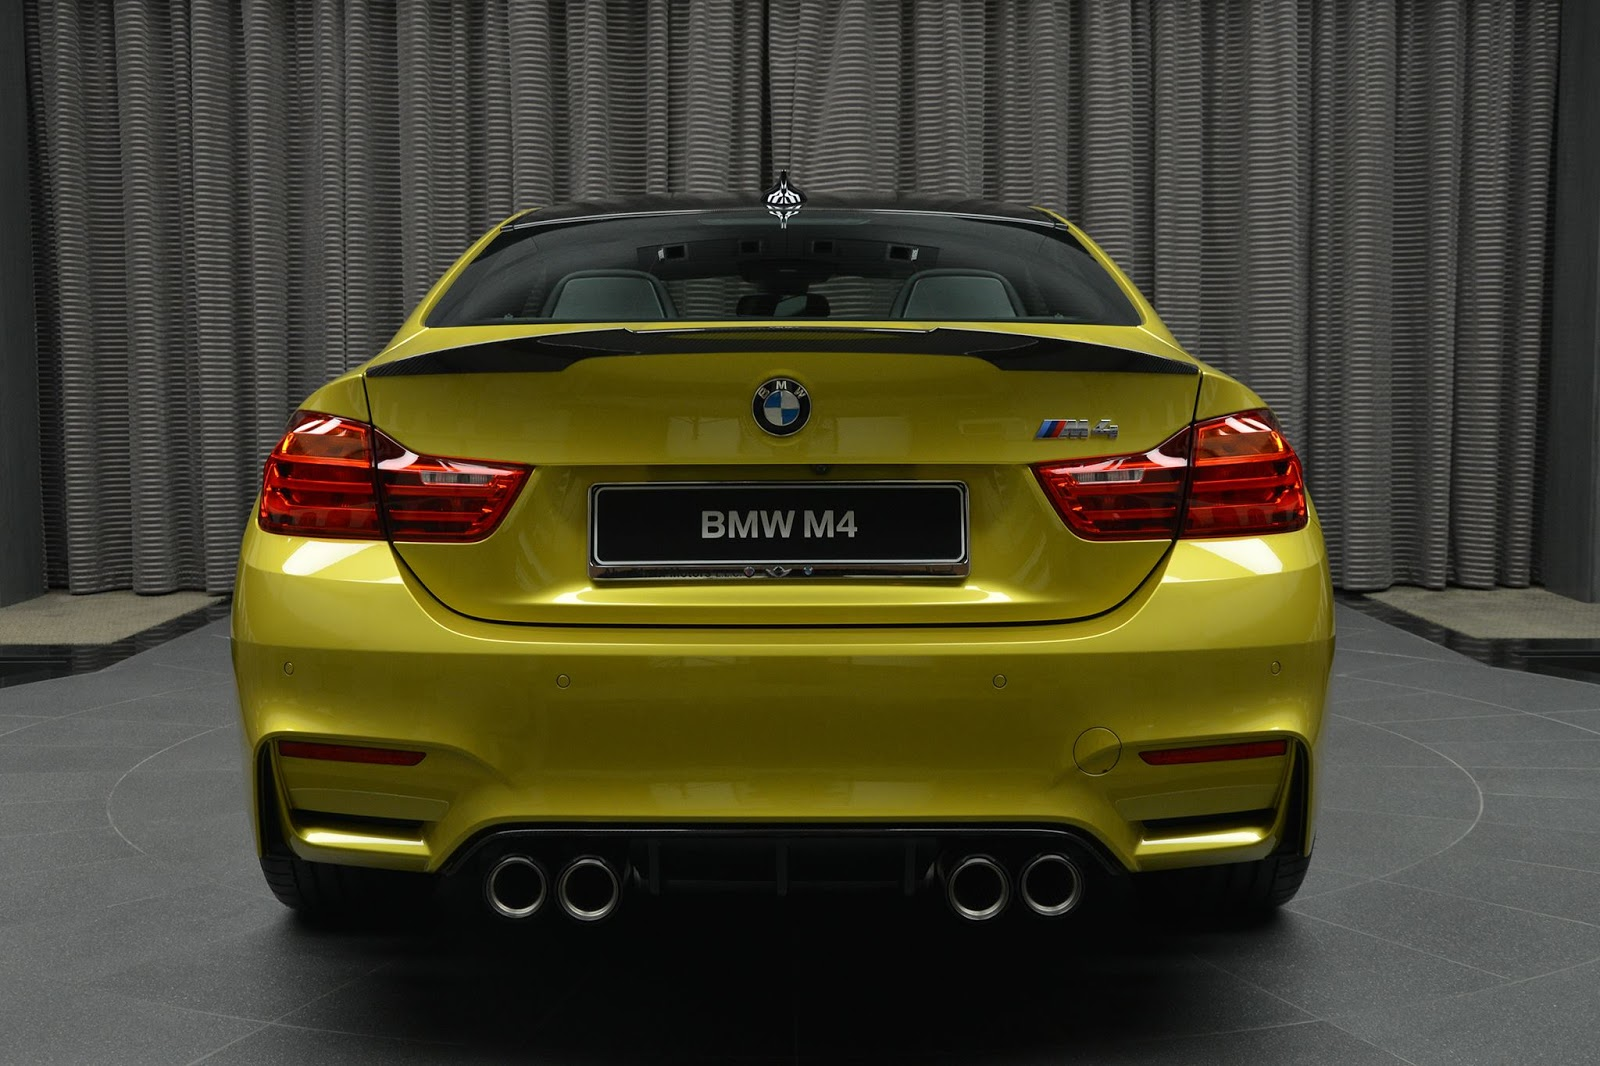 Austin Yellow F8 BMW M4 in Abu Dhabi (10)